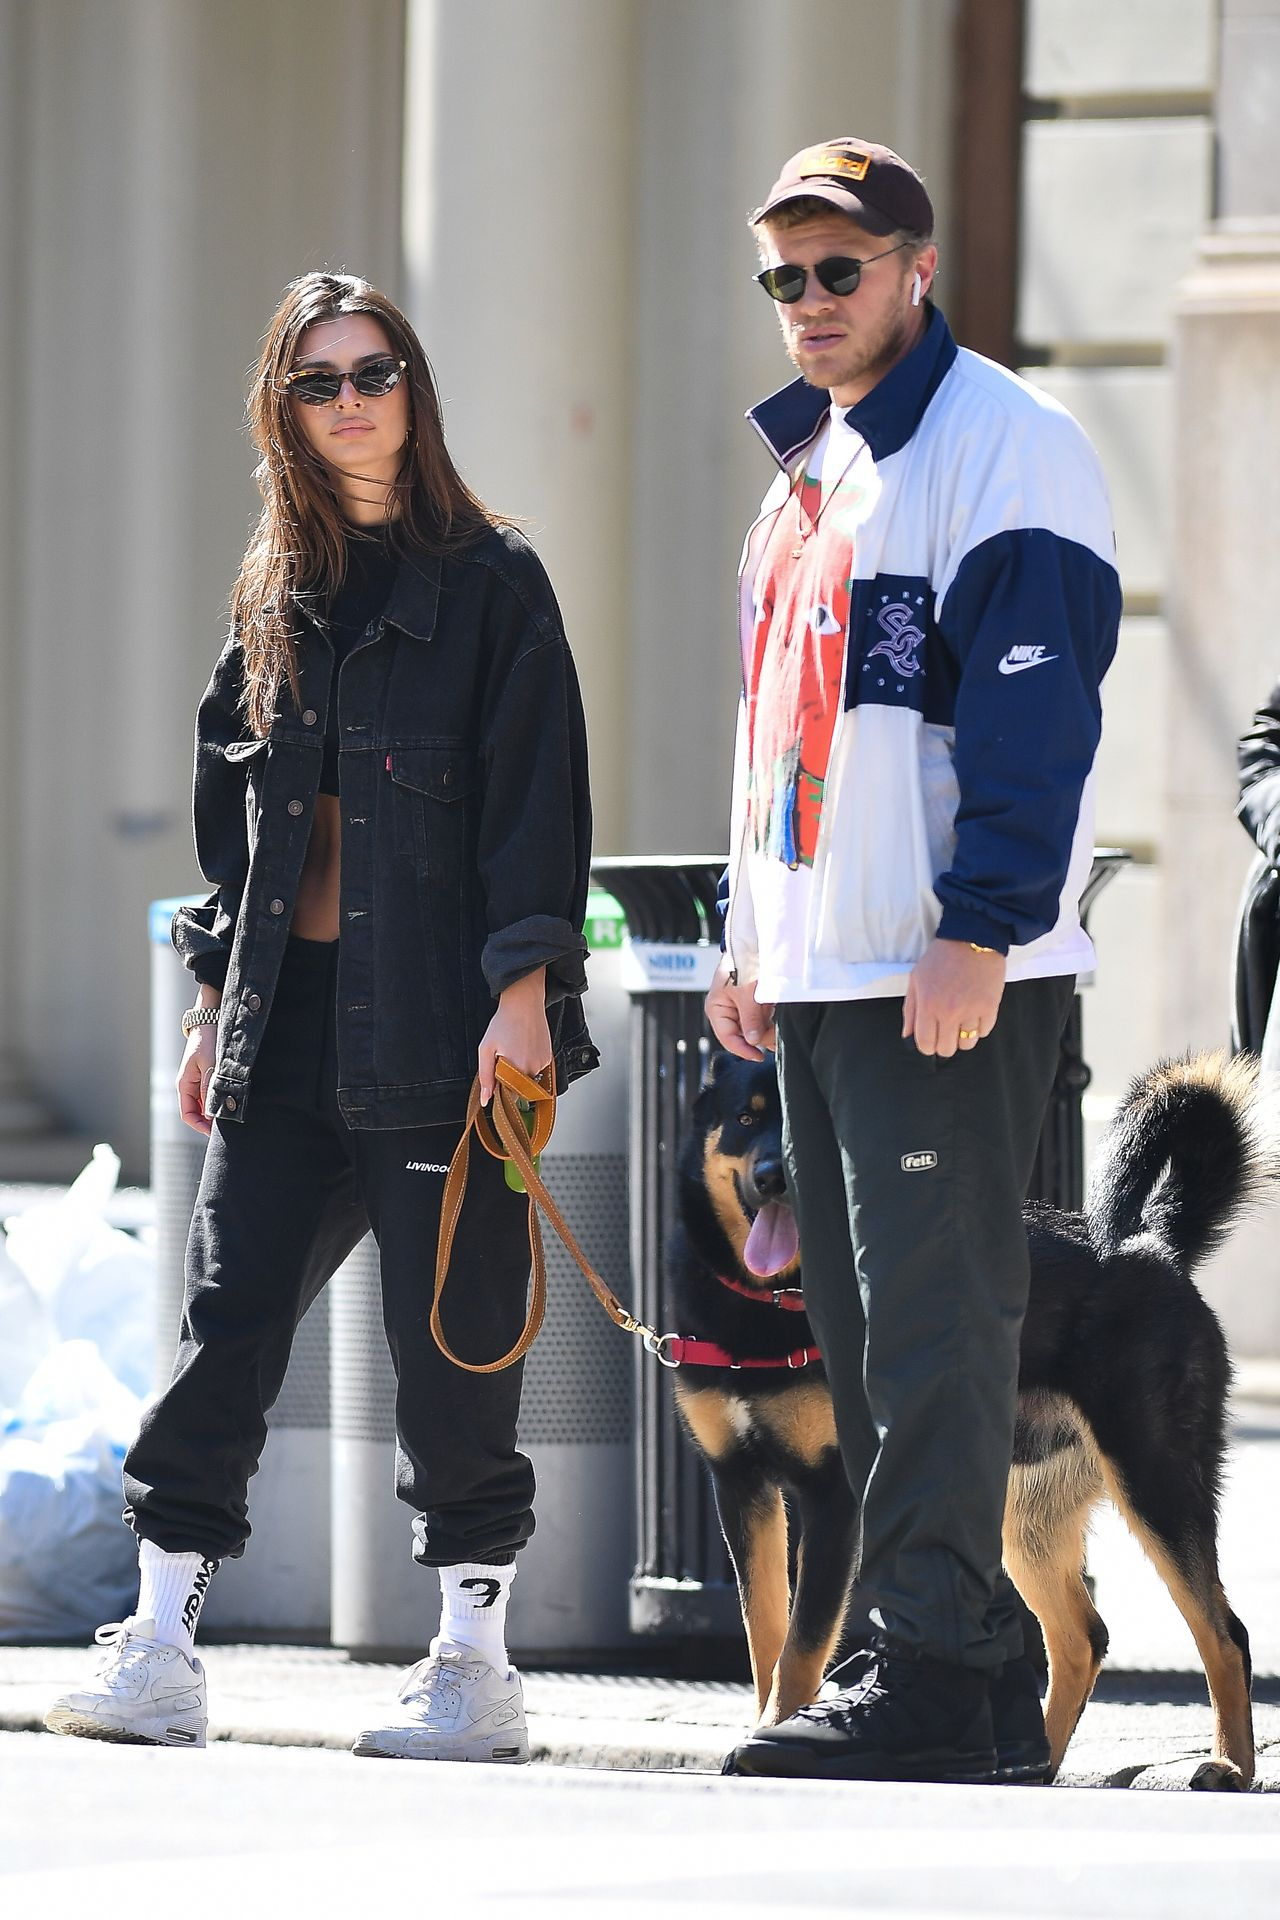 Emily Ratajkowski Walks With Her Dog Colombo In Nyc 0029